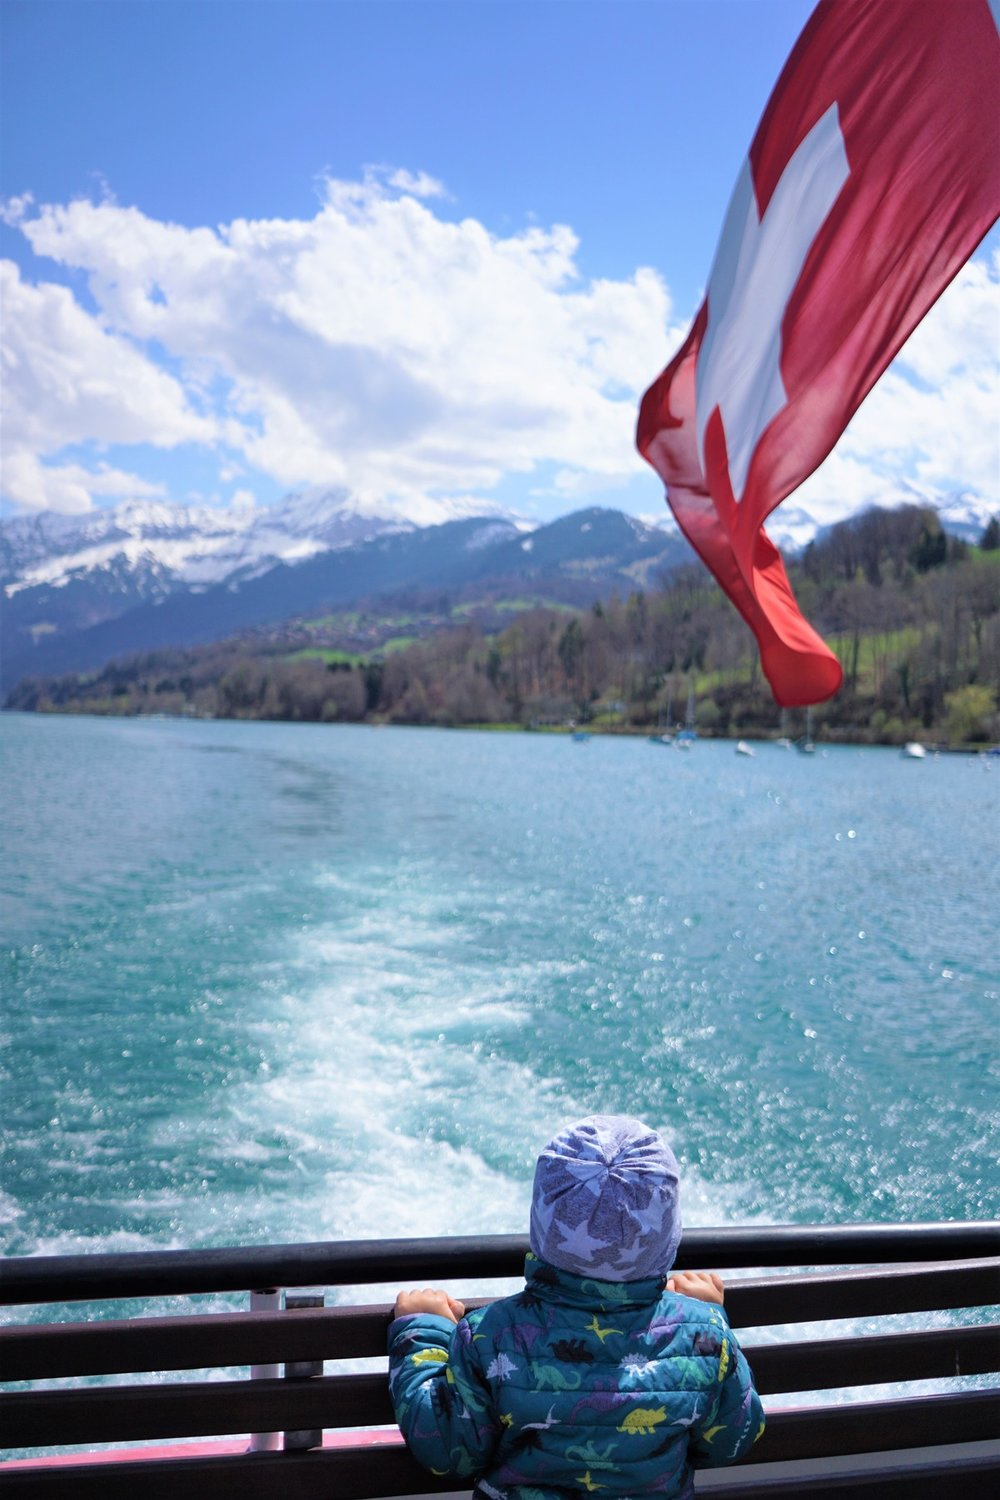 We were able to take this FREE boat from Interlaken to Thun, switzerland.  It was one of the most gorgeous and relazxing things we did.  free with our railpasses!